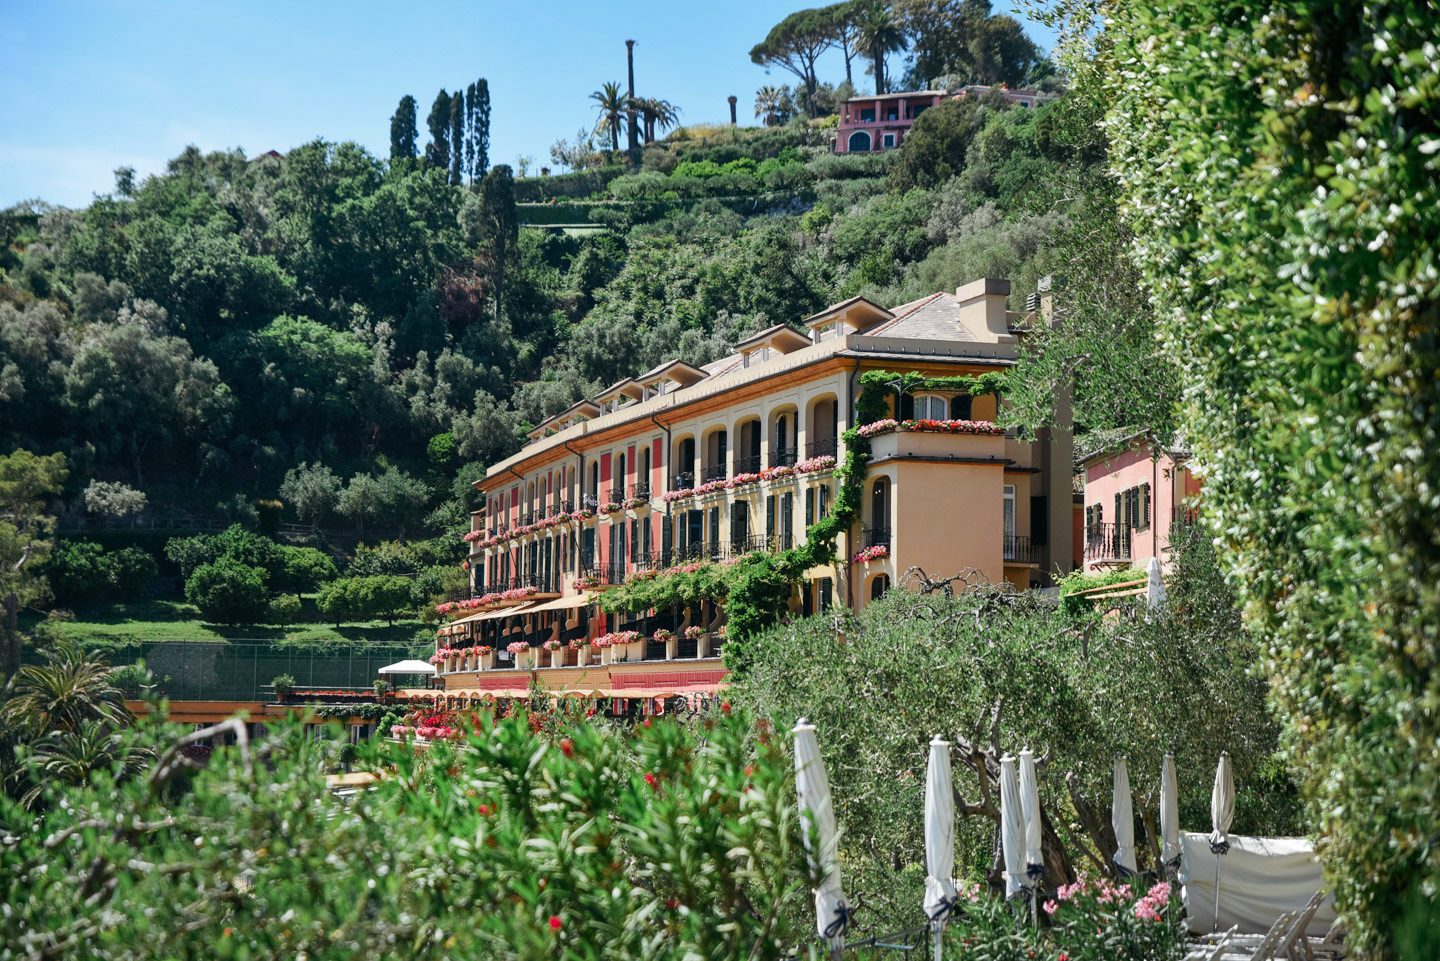 Blog-Mode-And-The-City-Lifestyle-Belmond-Hotel-5 copie